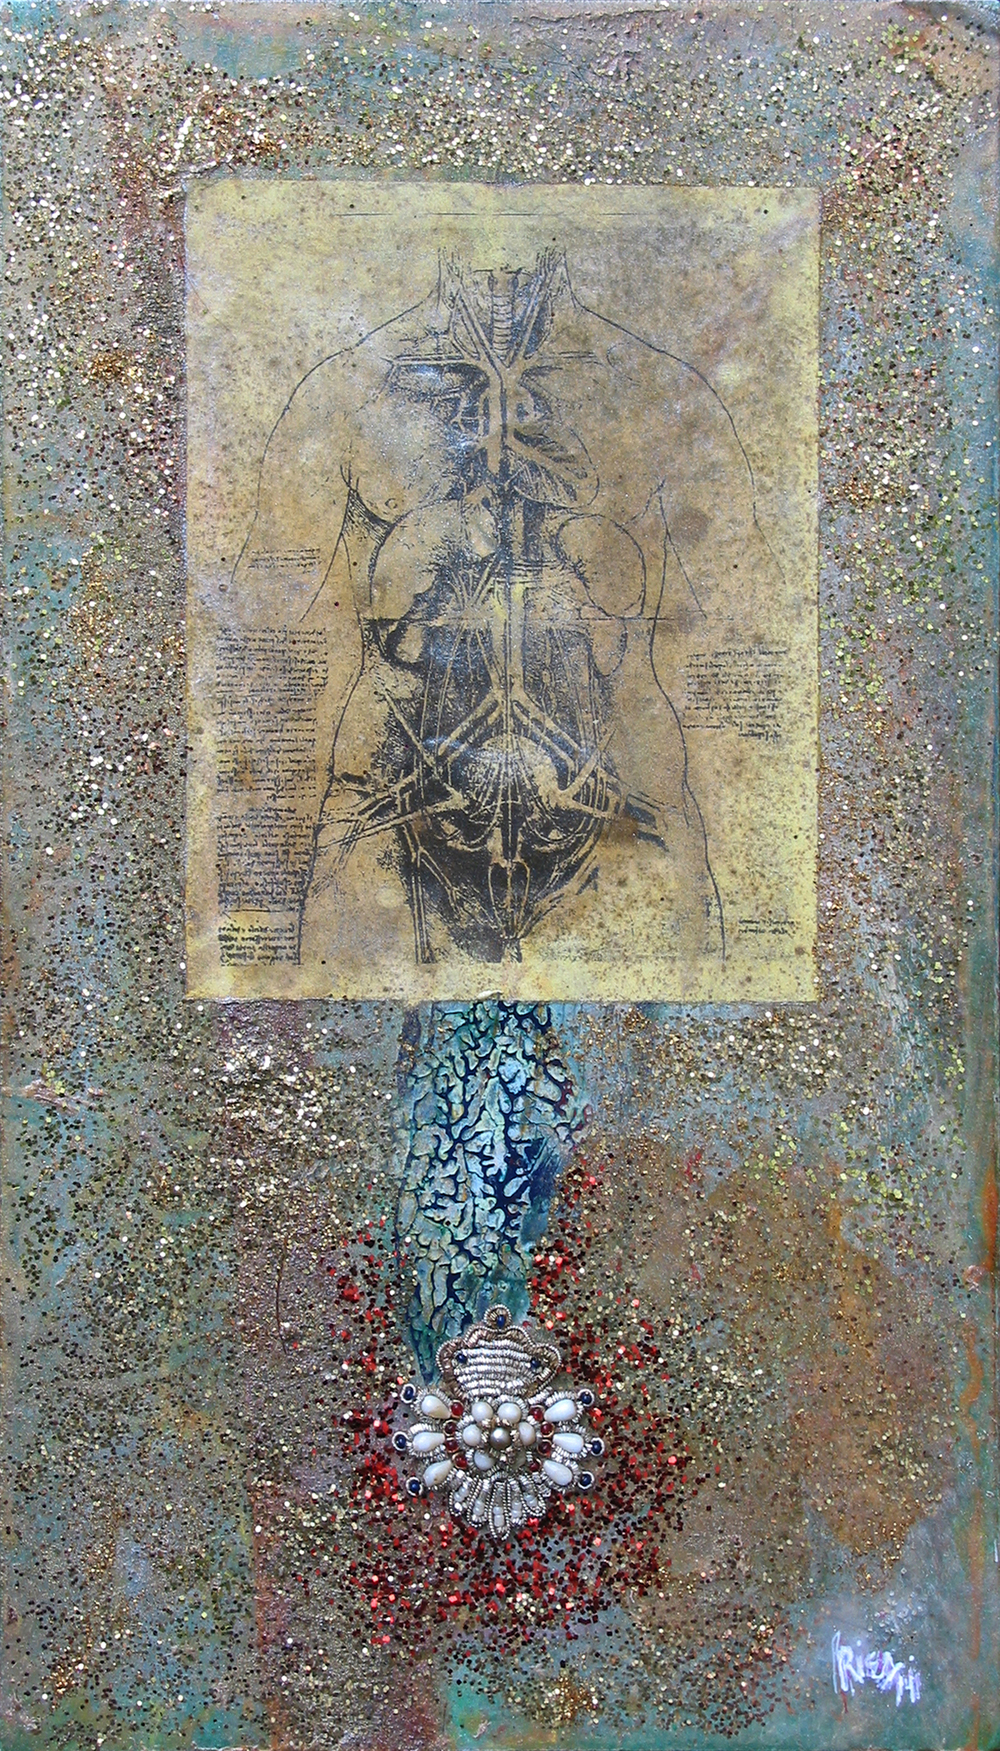 "Urino-Genital Systems in a Female Body: Homage to Leonardo da Vinci, 14"" x 8"", mixed media, 2014"